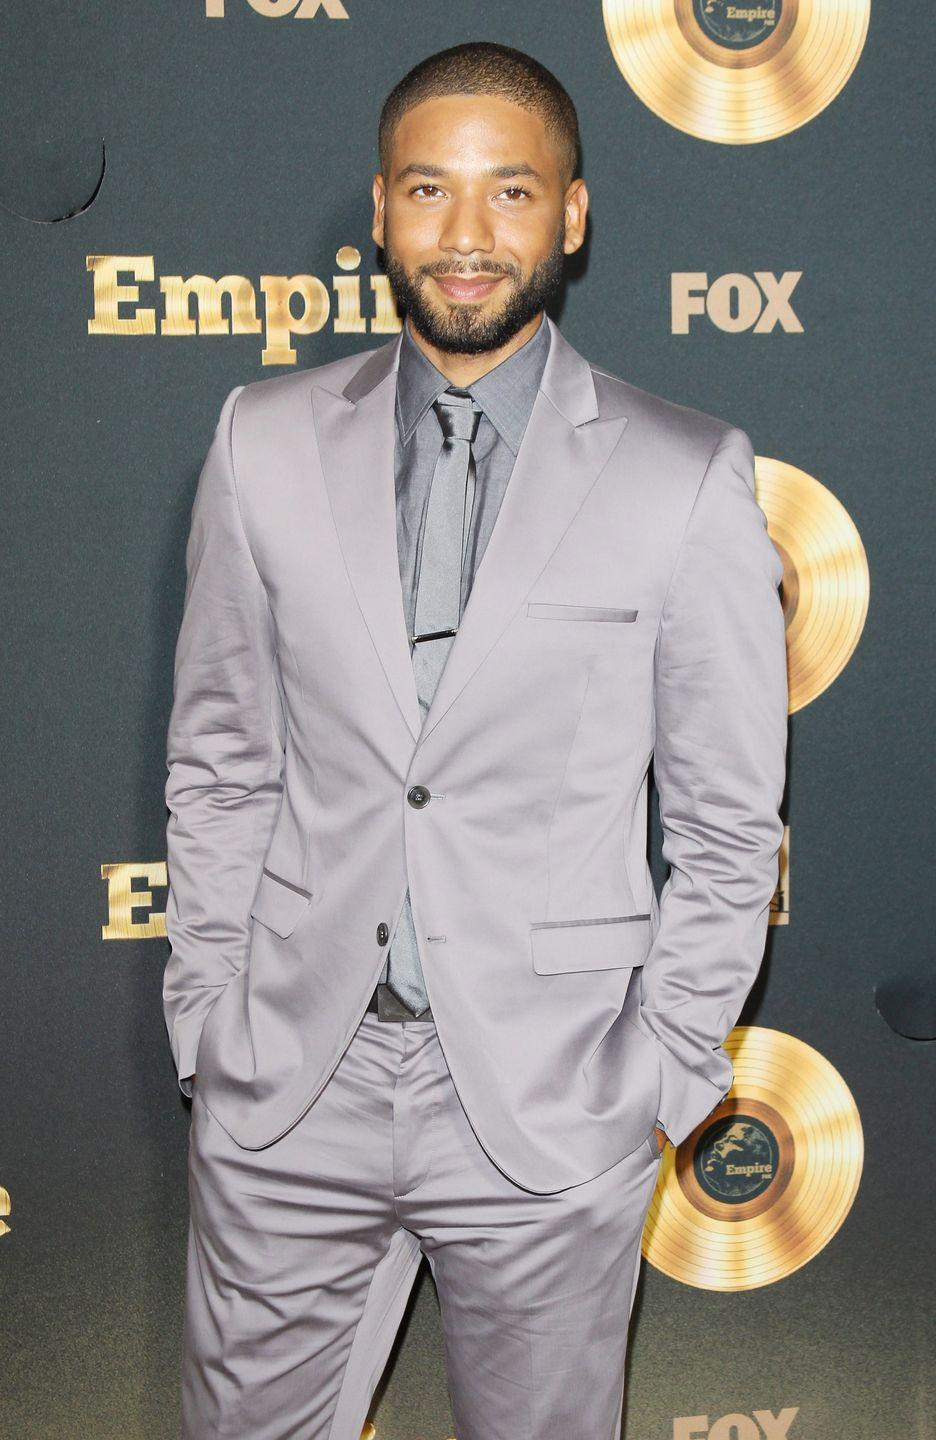 <p>You'll probably recognize Jussie as one of the breakout stars of FOX's hit drama <em>Empire</em>, where he played Jamal Lyon, the middle son of hip-hop mogul Luscious and his ex-wife Cookie.</p>